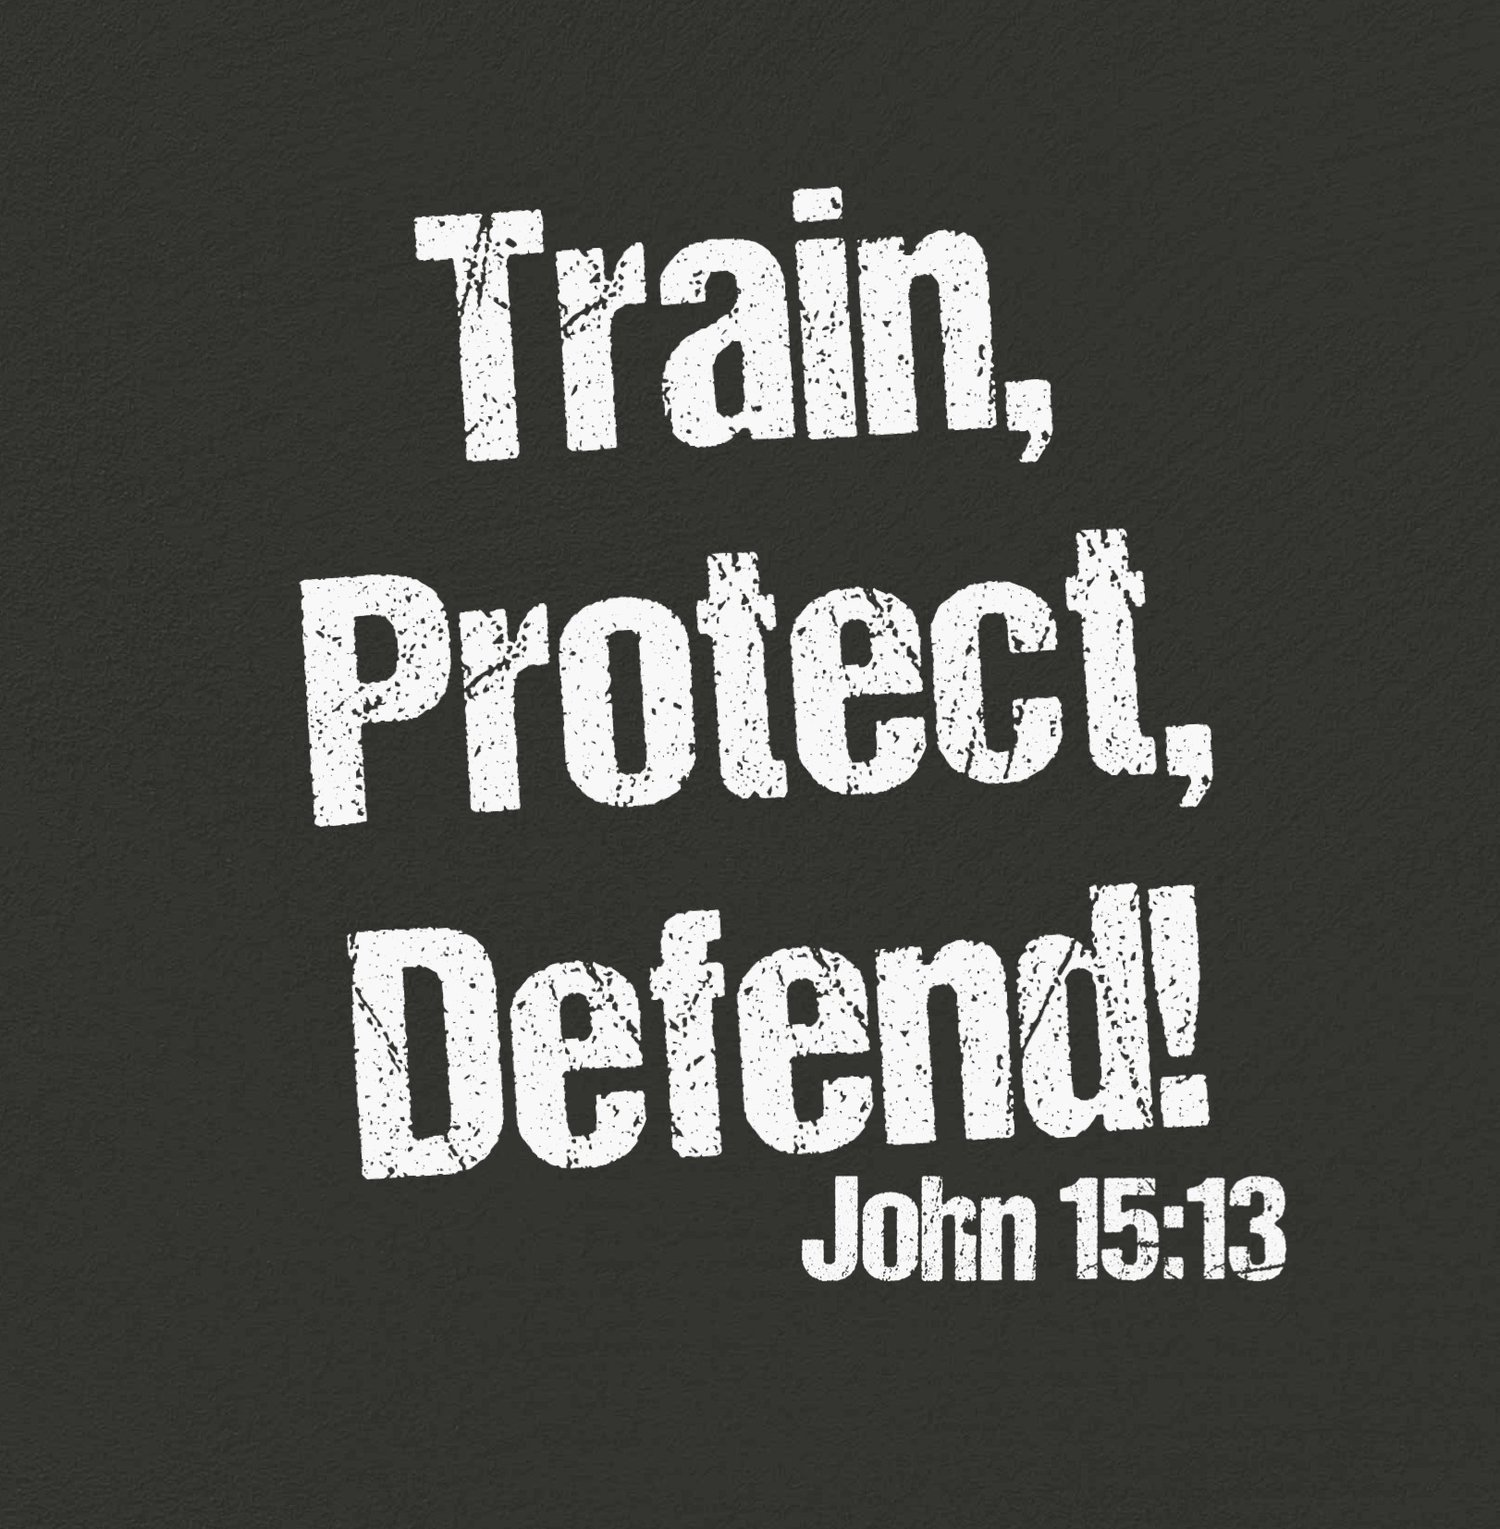 Train, Protect, Defend!